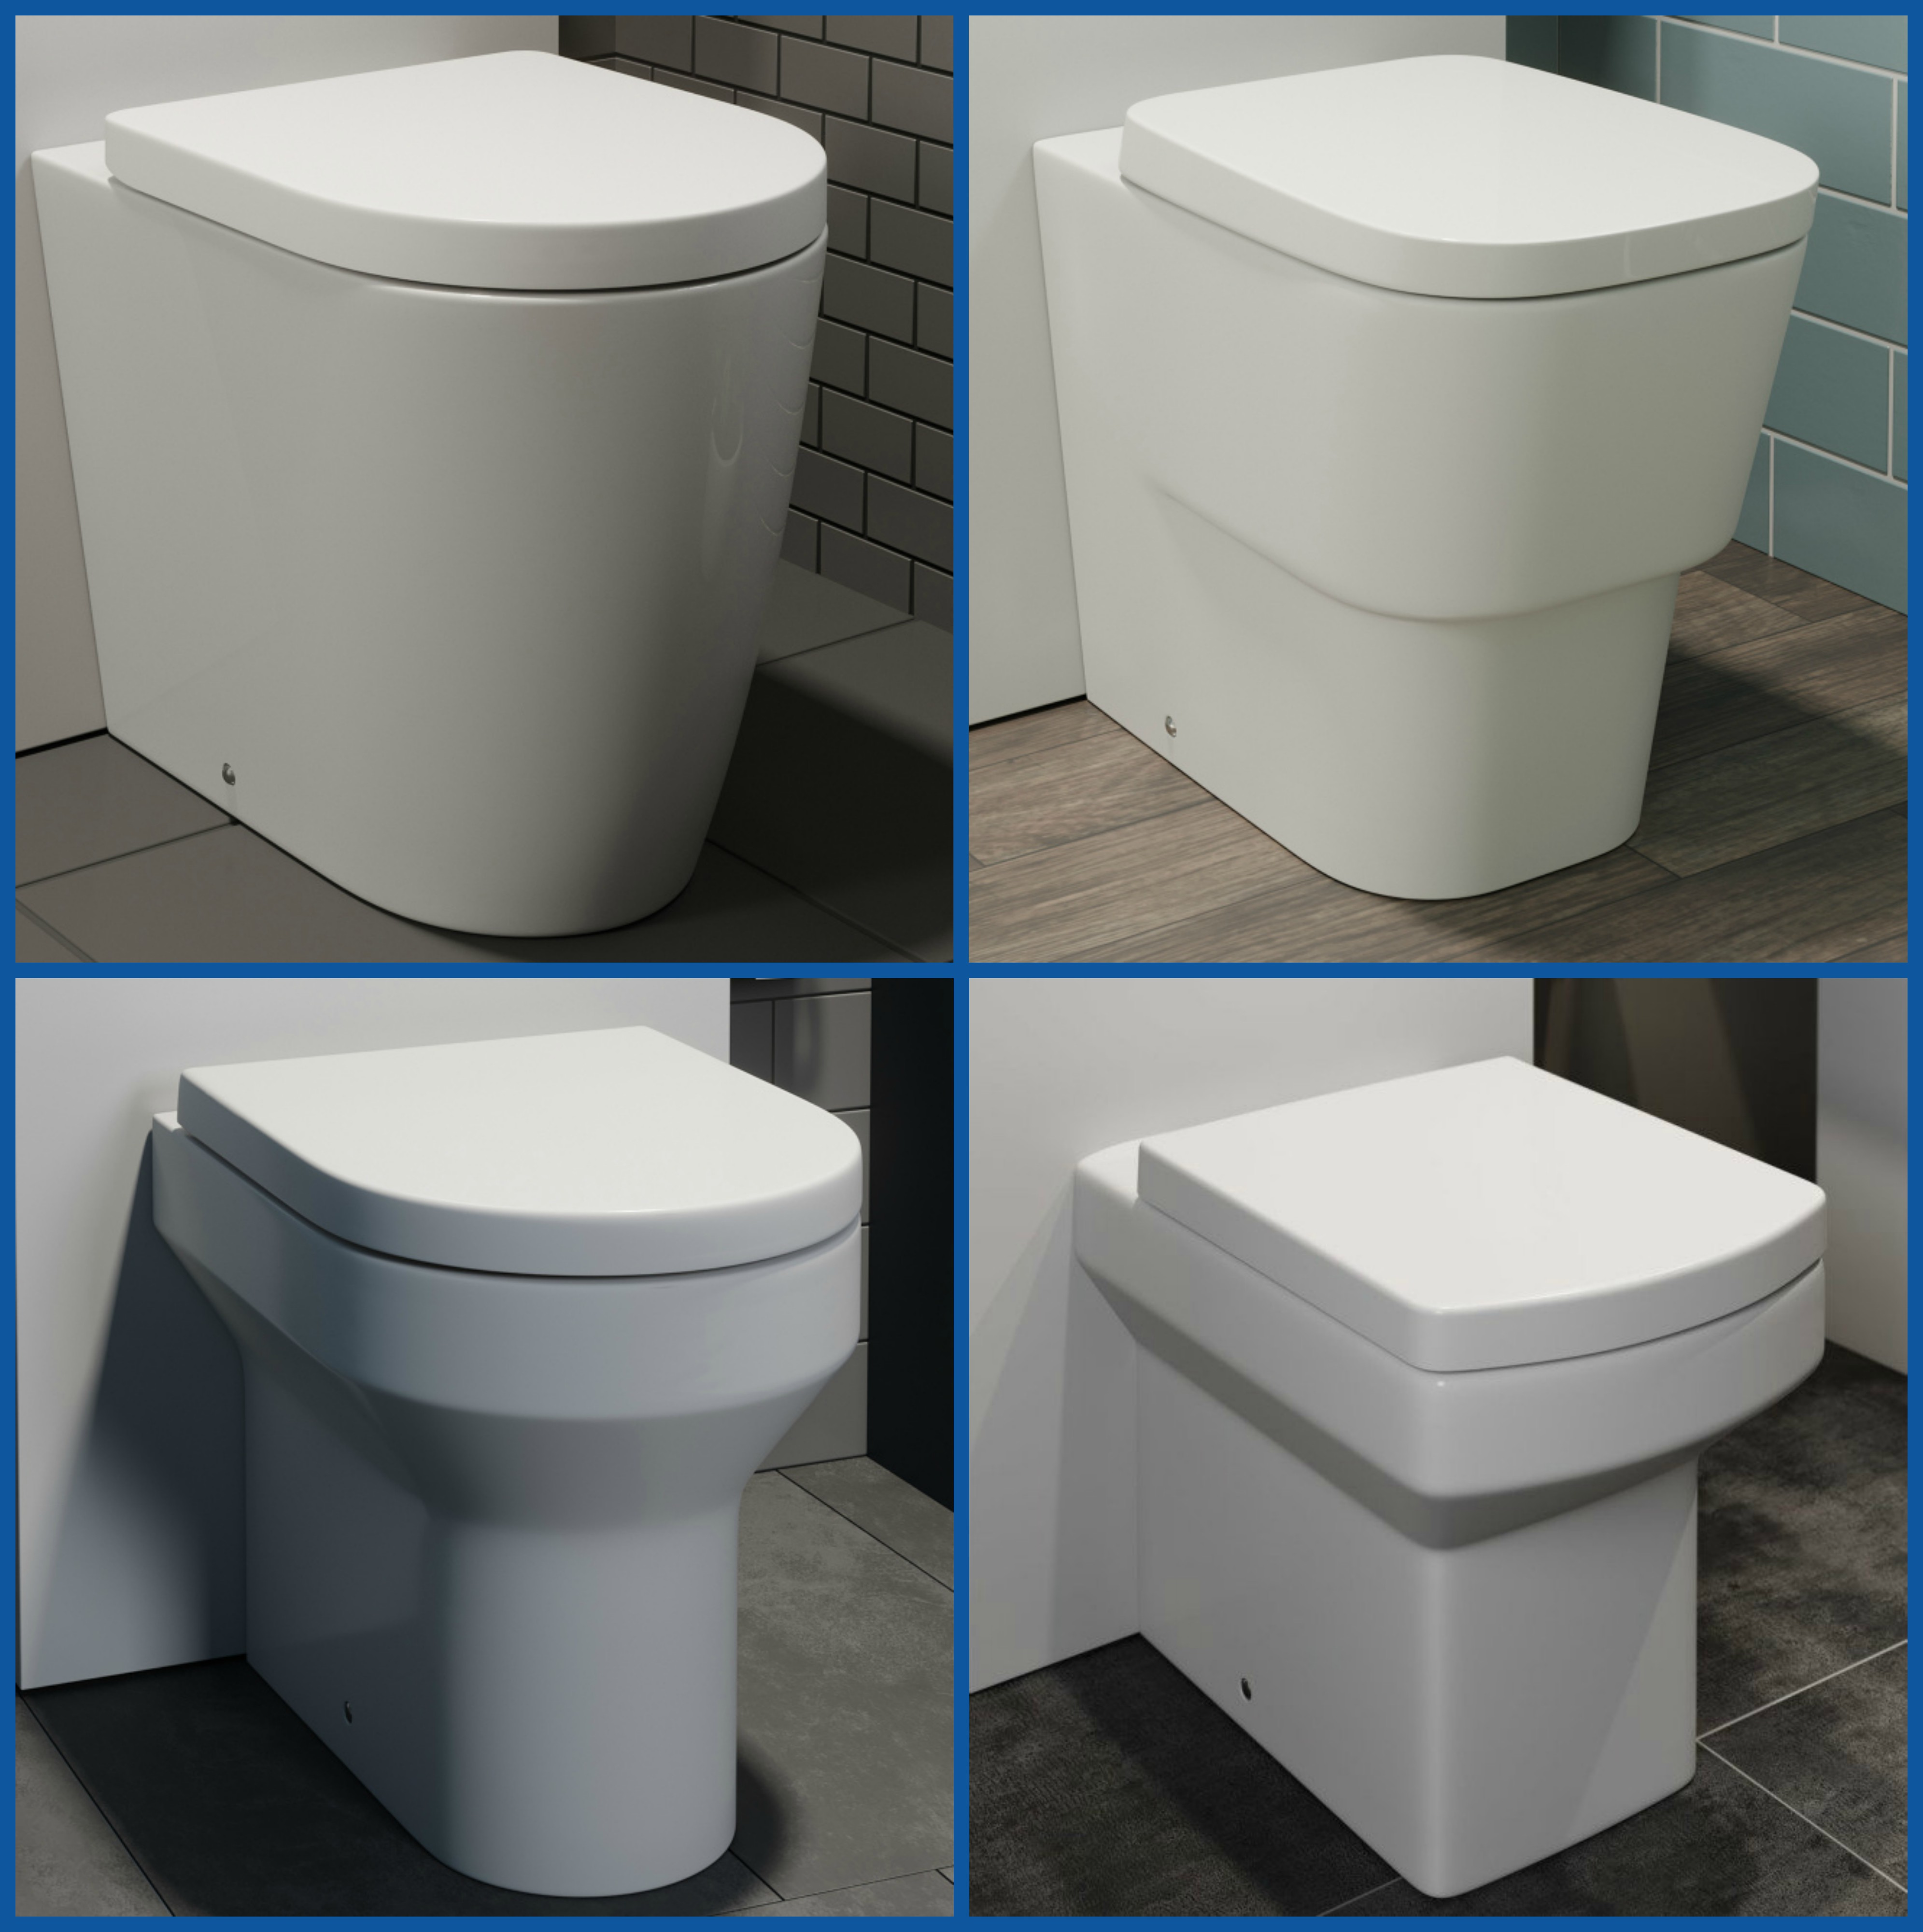 with contemporary ideas washes unit decor cupboard understairs wc integrated wallpaper and width variations sizes for converting ikea suite tiles plumbing bathroom toilet you decorating that basin systems sink saniflo cistern colour closomat modern downstairs